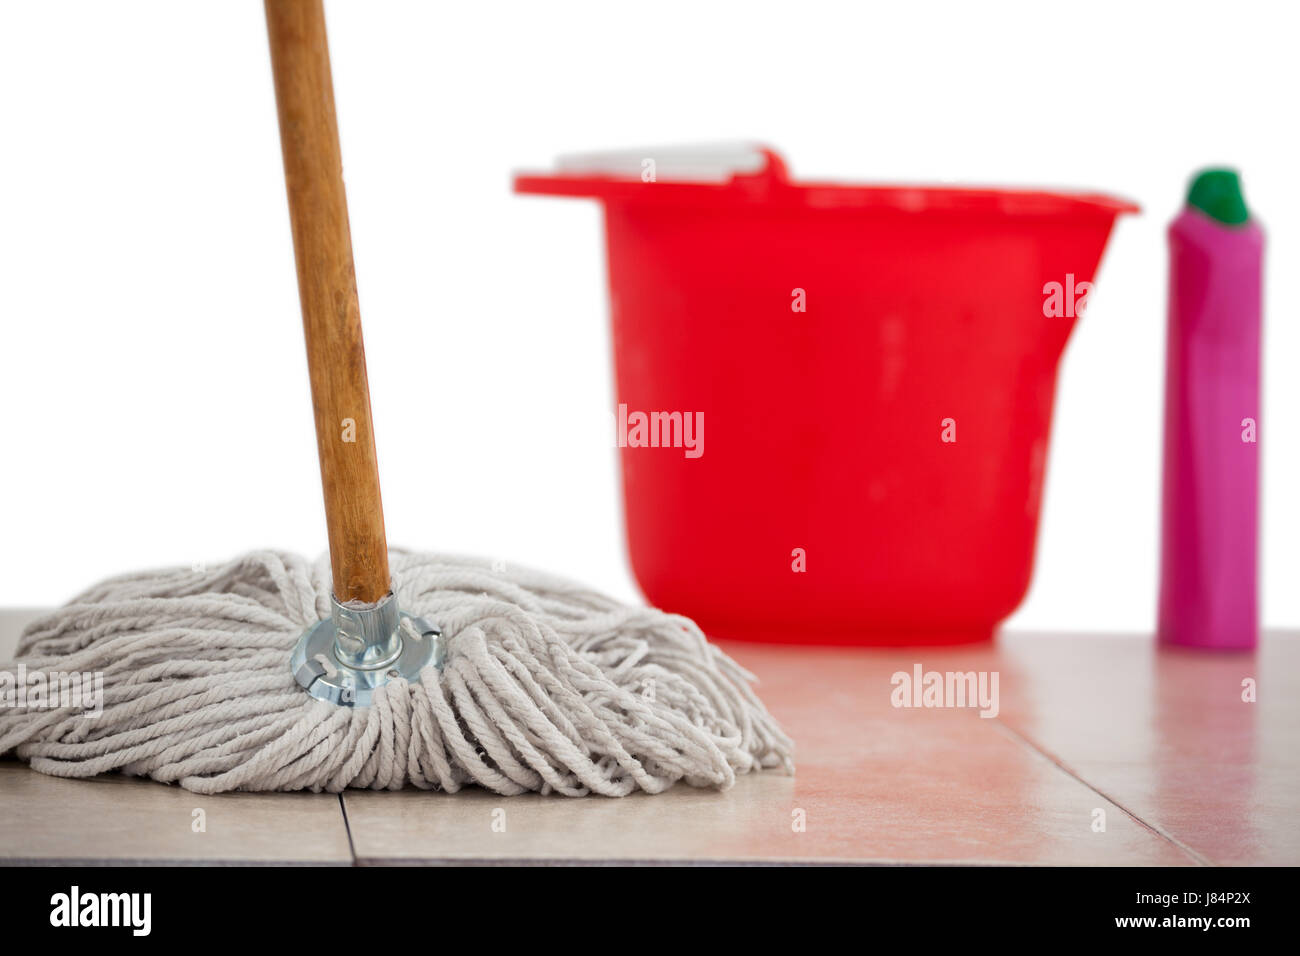 Close-up of mop cleaning the tile floor - Stock Image